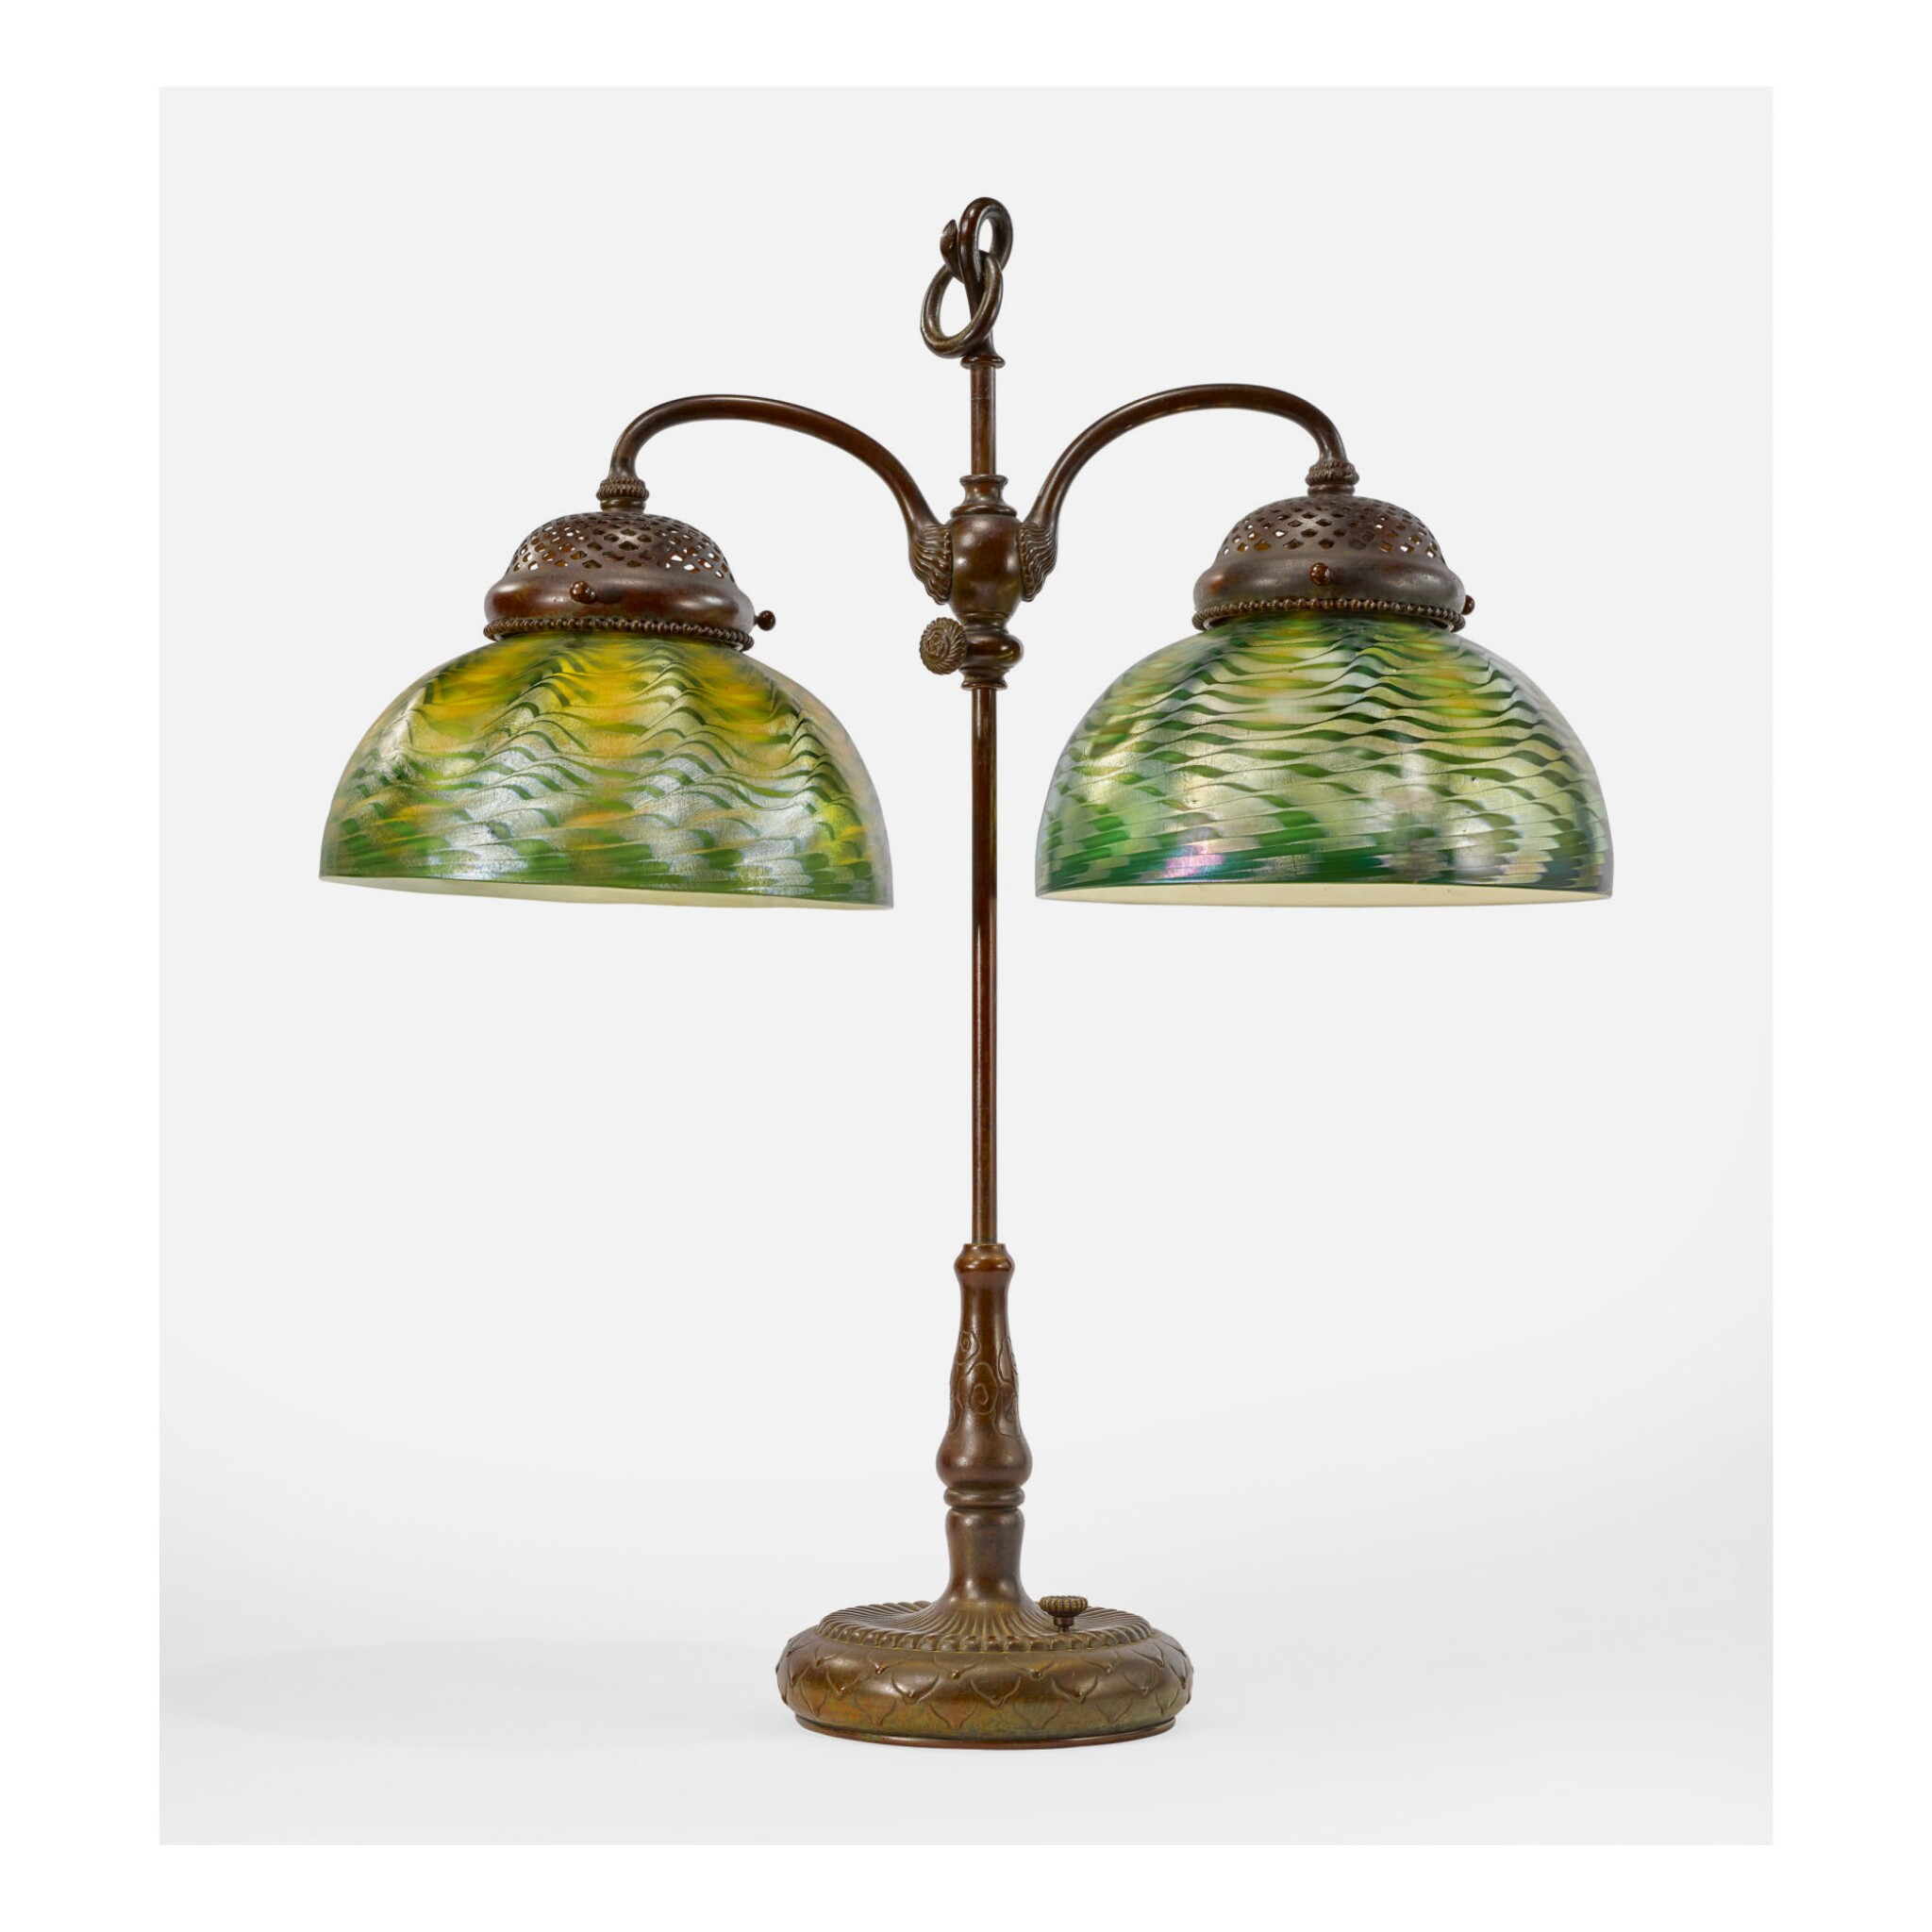 TIFFANY STUDIOS | ADJUSTABLE DOUBLE STUDENT LAMP